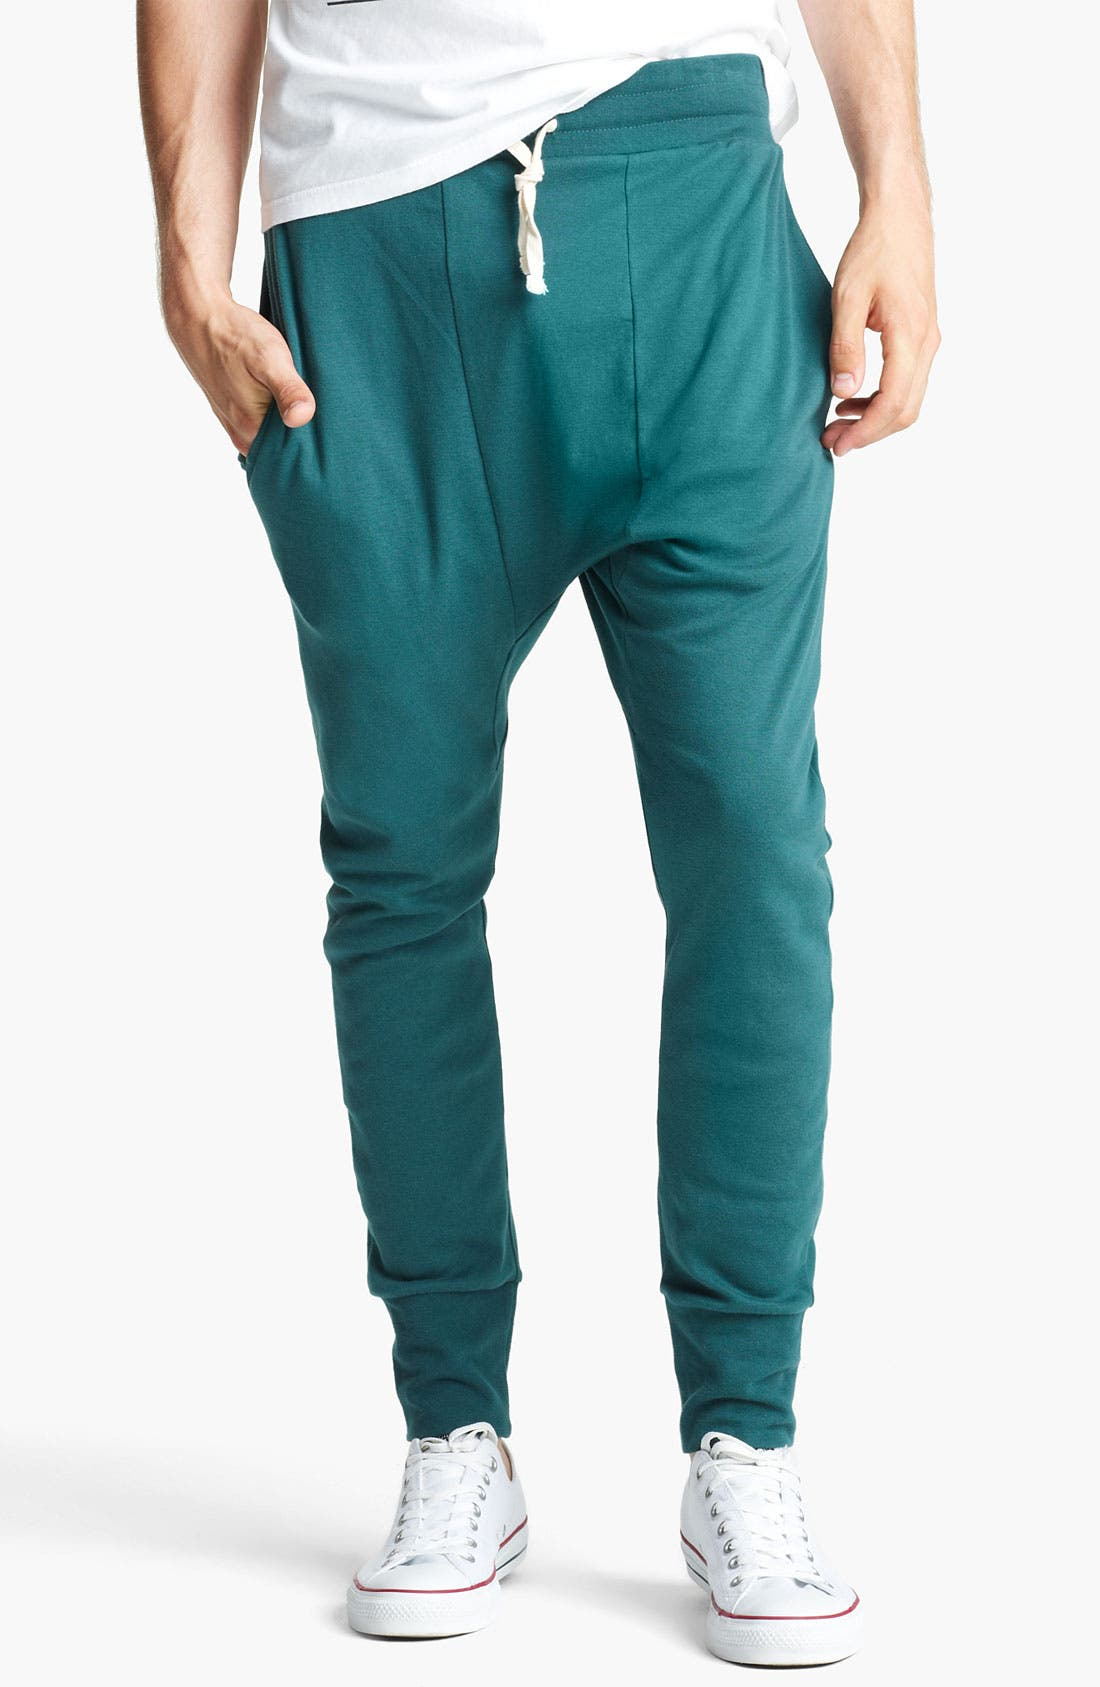 Alternate Image 1 Selected - Topman Jersey Cotton Athletic Pants